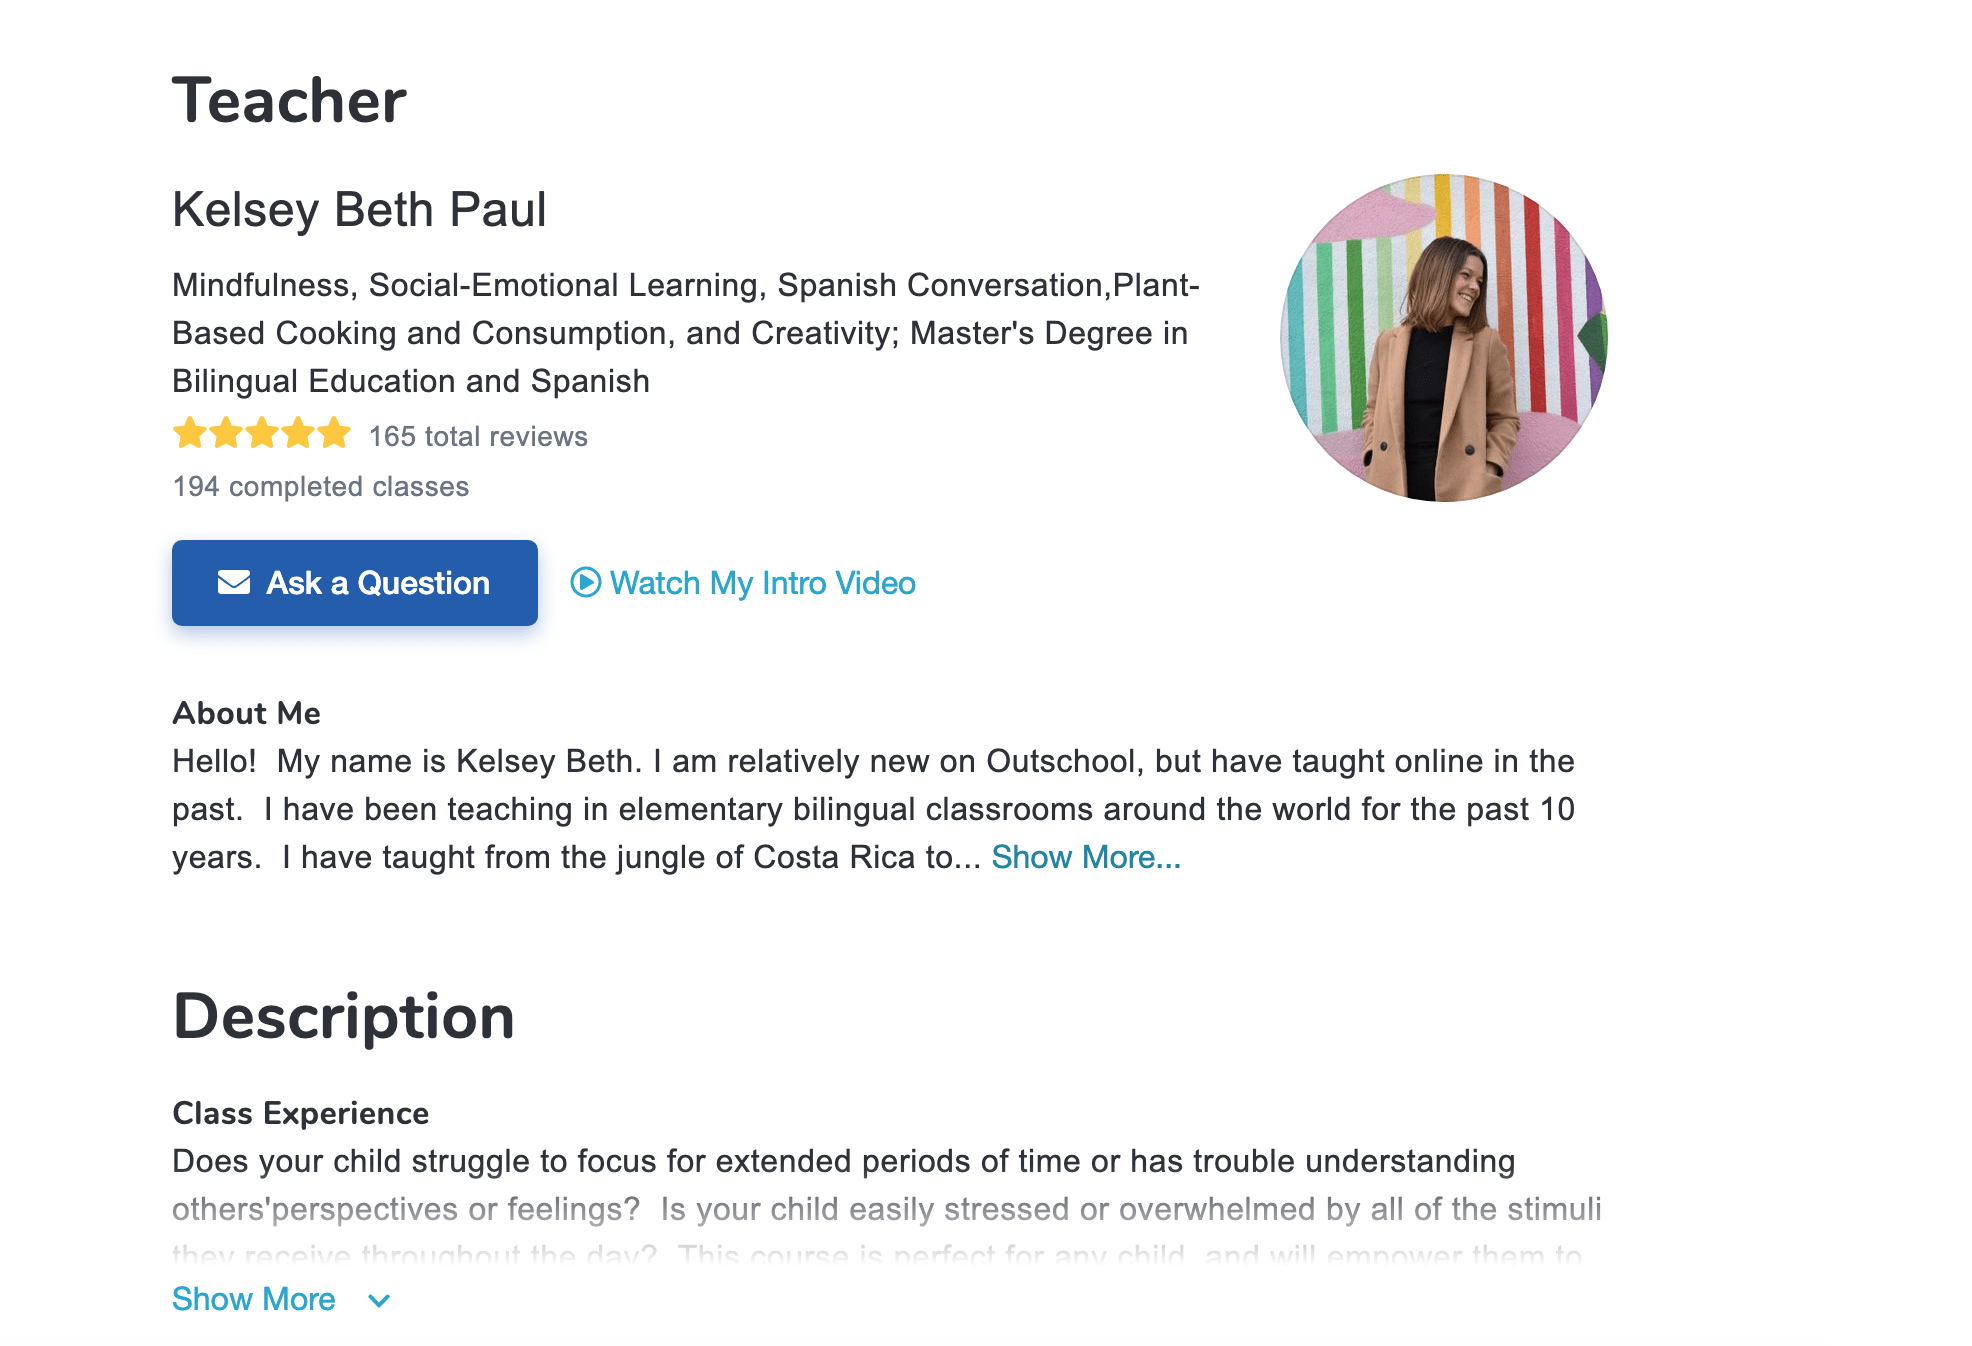 Pictured is a teacher profile on the online marketplace Outschool